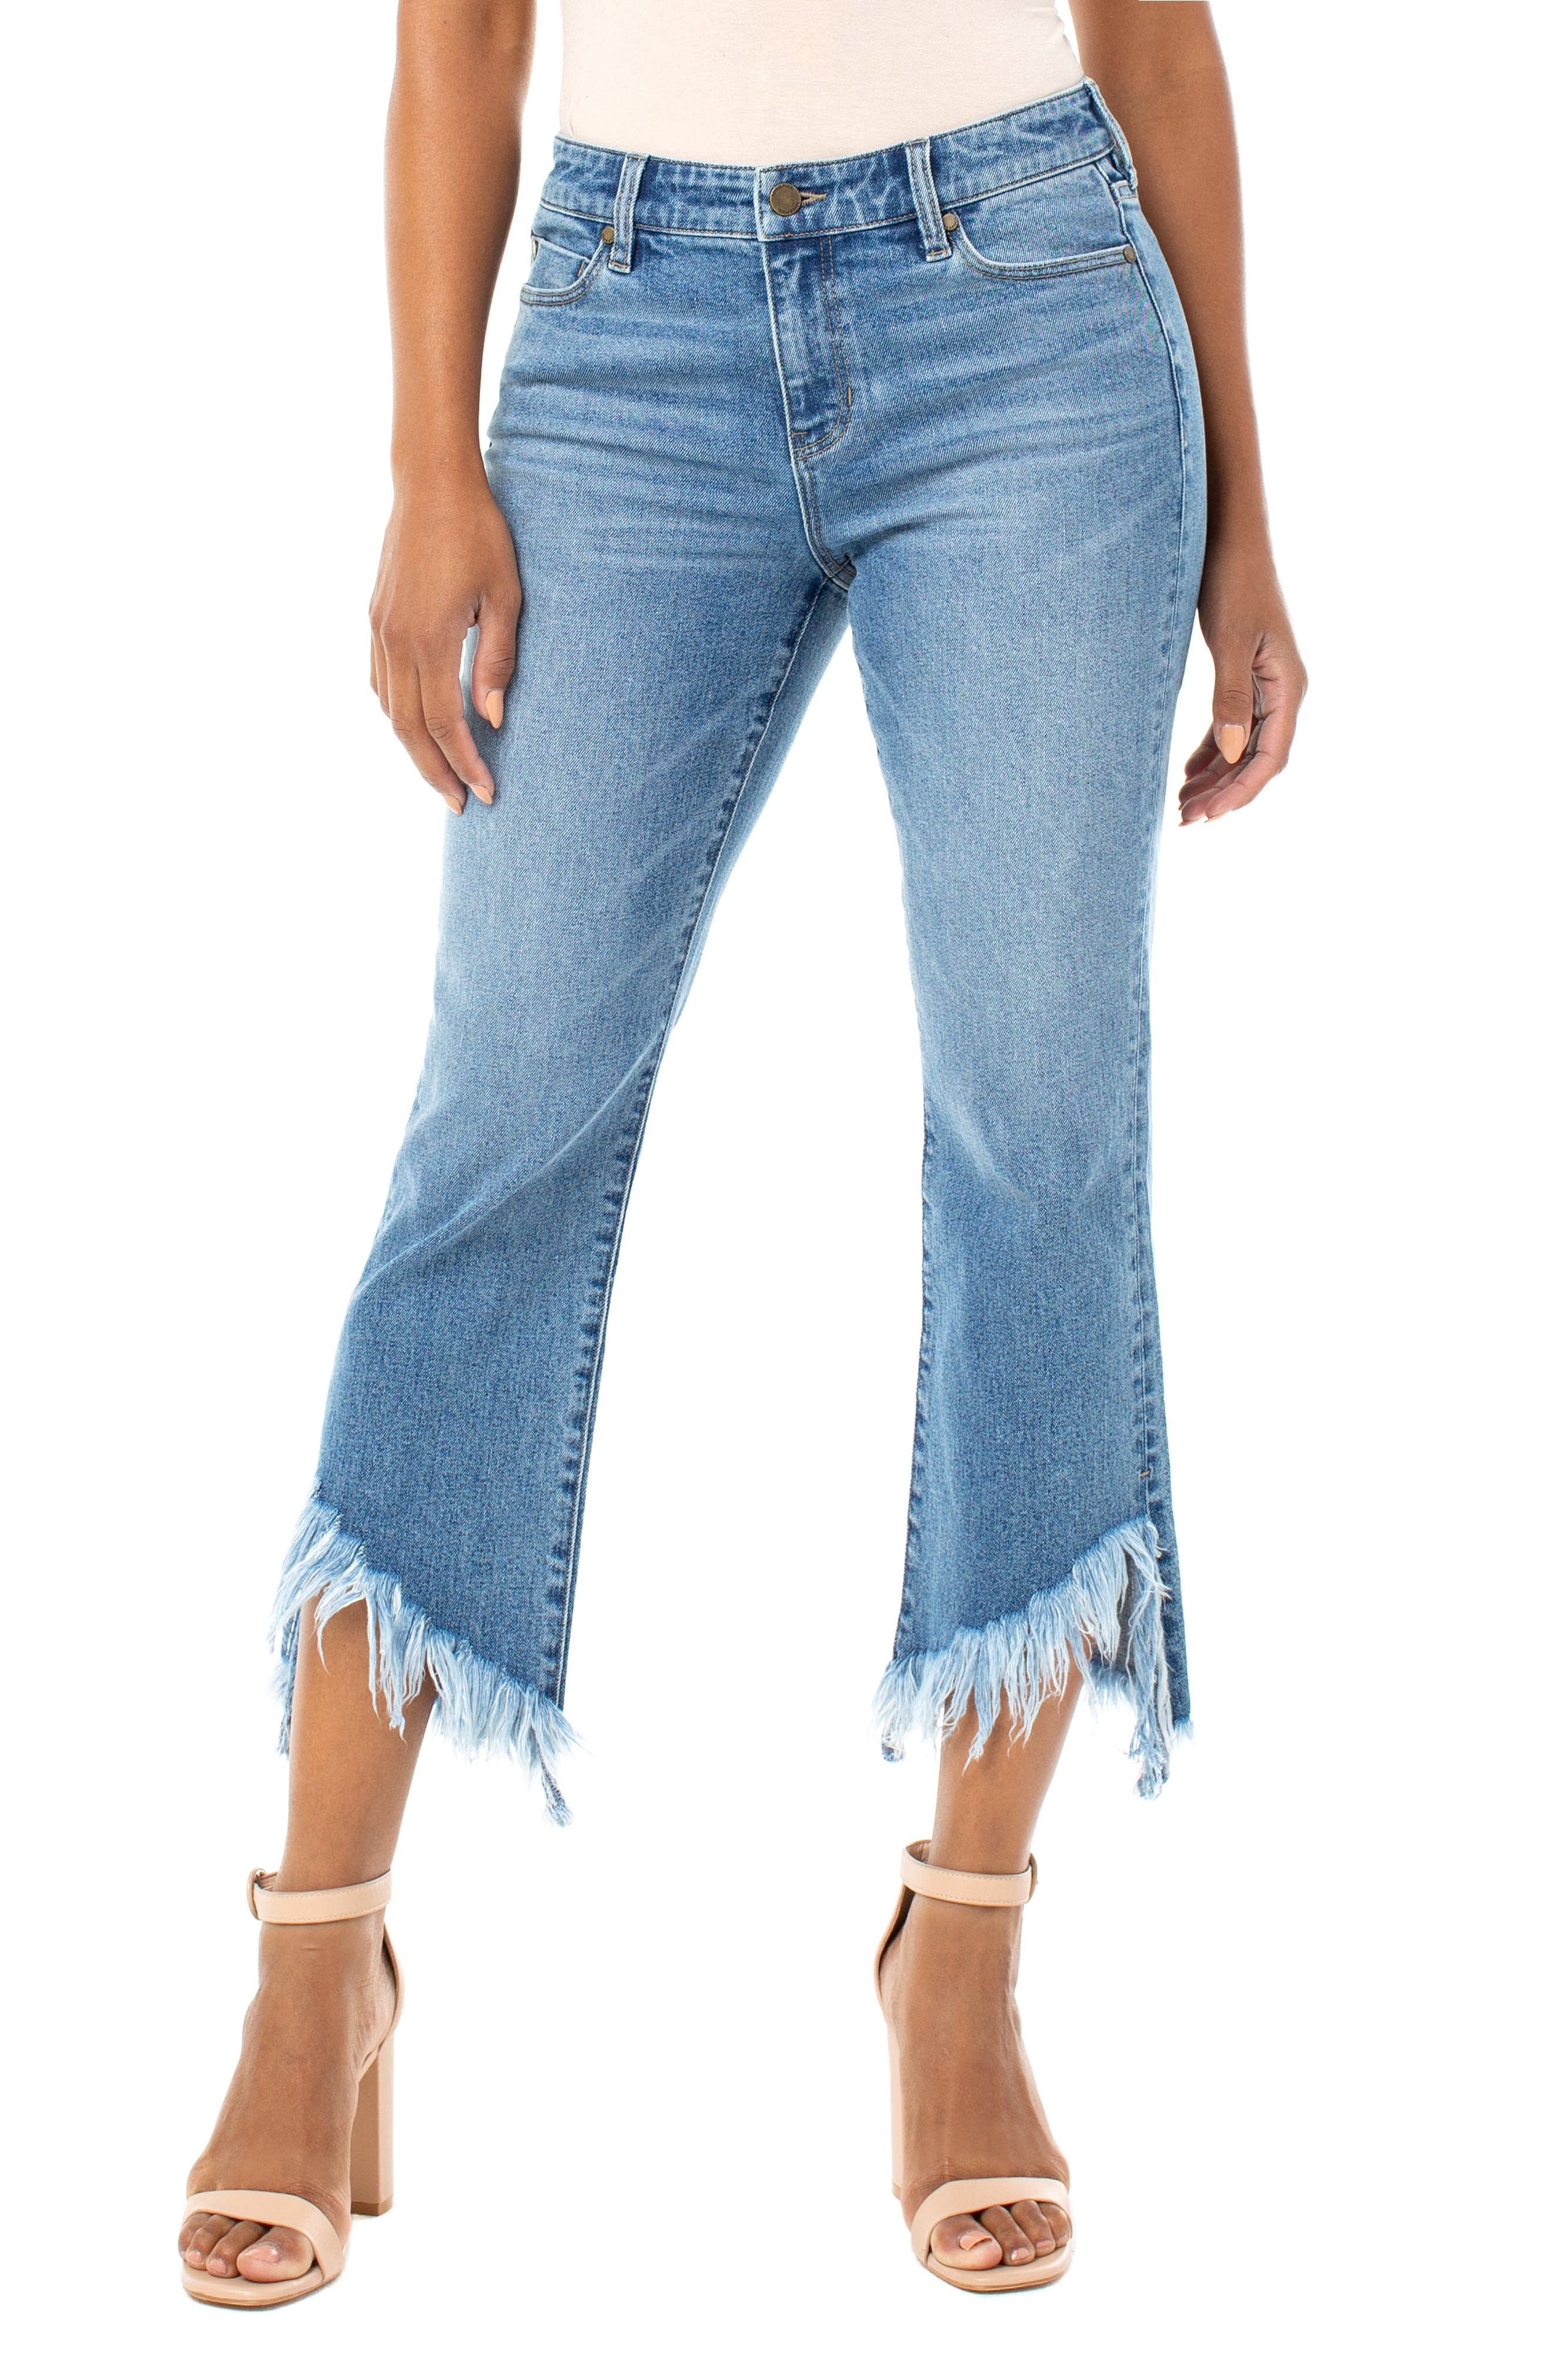 A just-right wash brings a preloved vibe to these show-off jeans done with a fringed, off-center hemline. Style Name: Liverpool High Waist Chewed Step Hem Crop Flare Jeans (Harding). Style Number: 5964927. Available in stores.